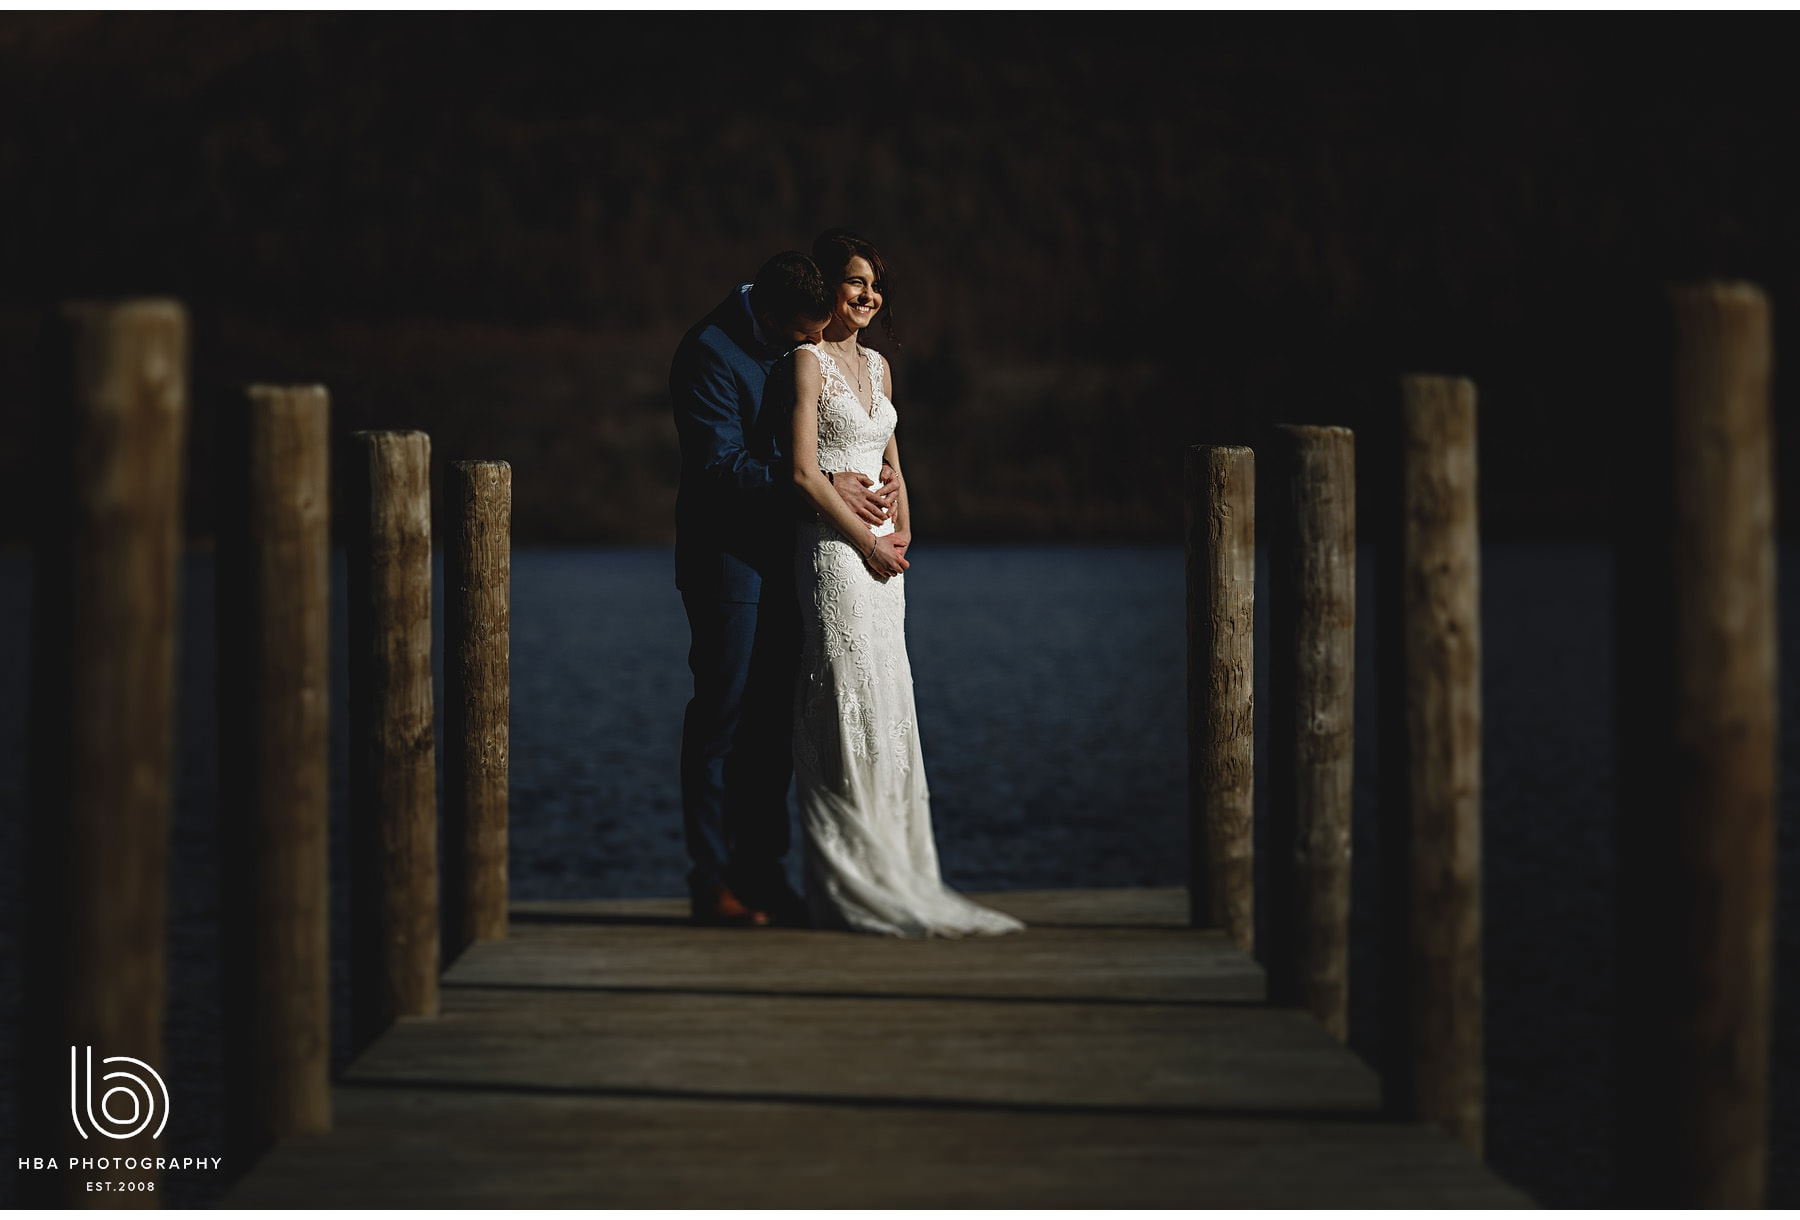 the bride & groom at the end of the pier at Derwent Water